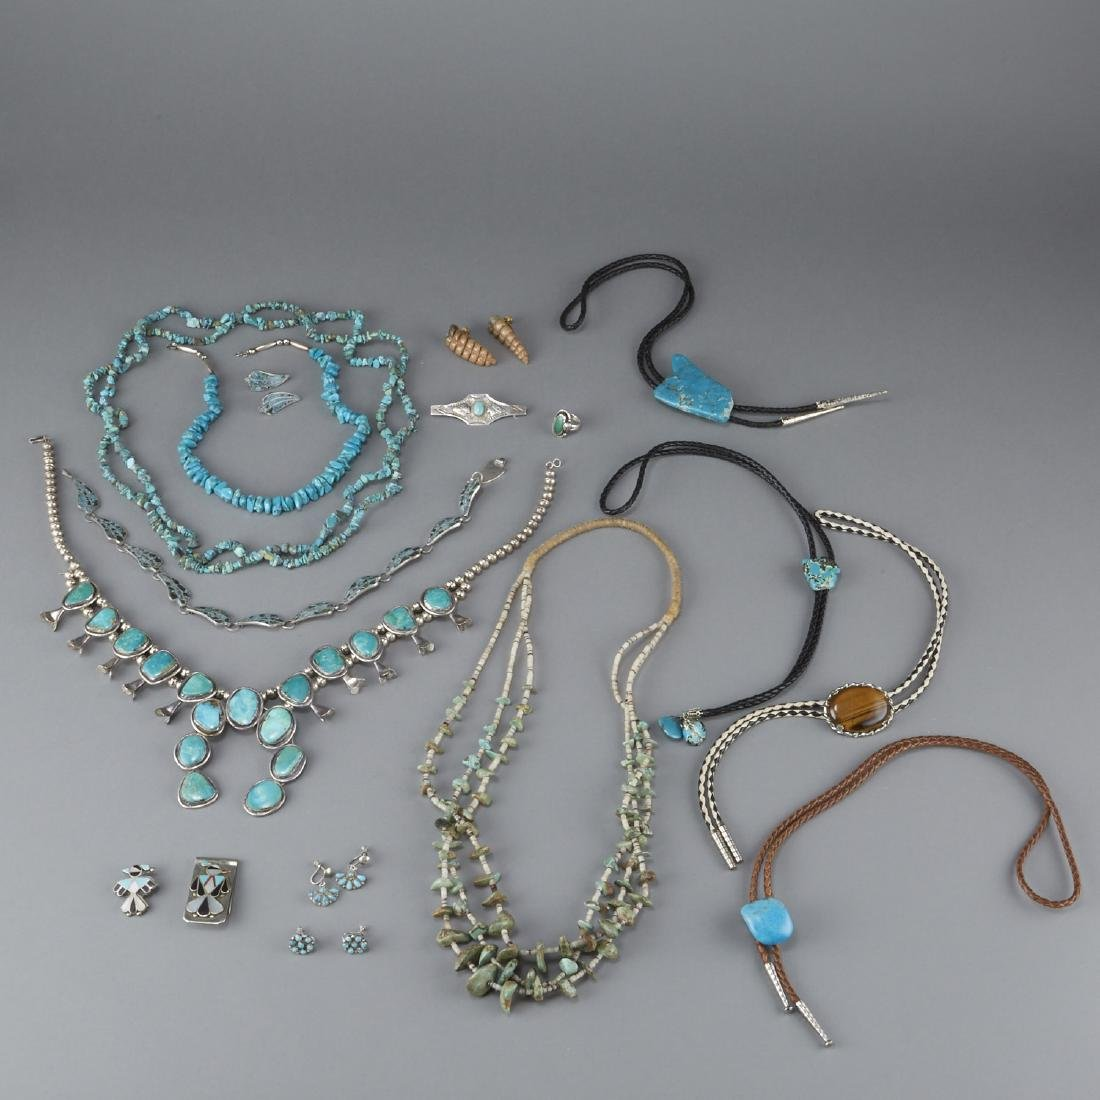 Southwestern Jewelry Silver, Turquoise, etc.